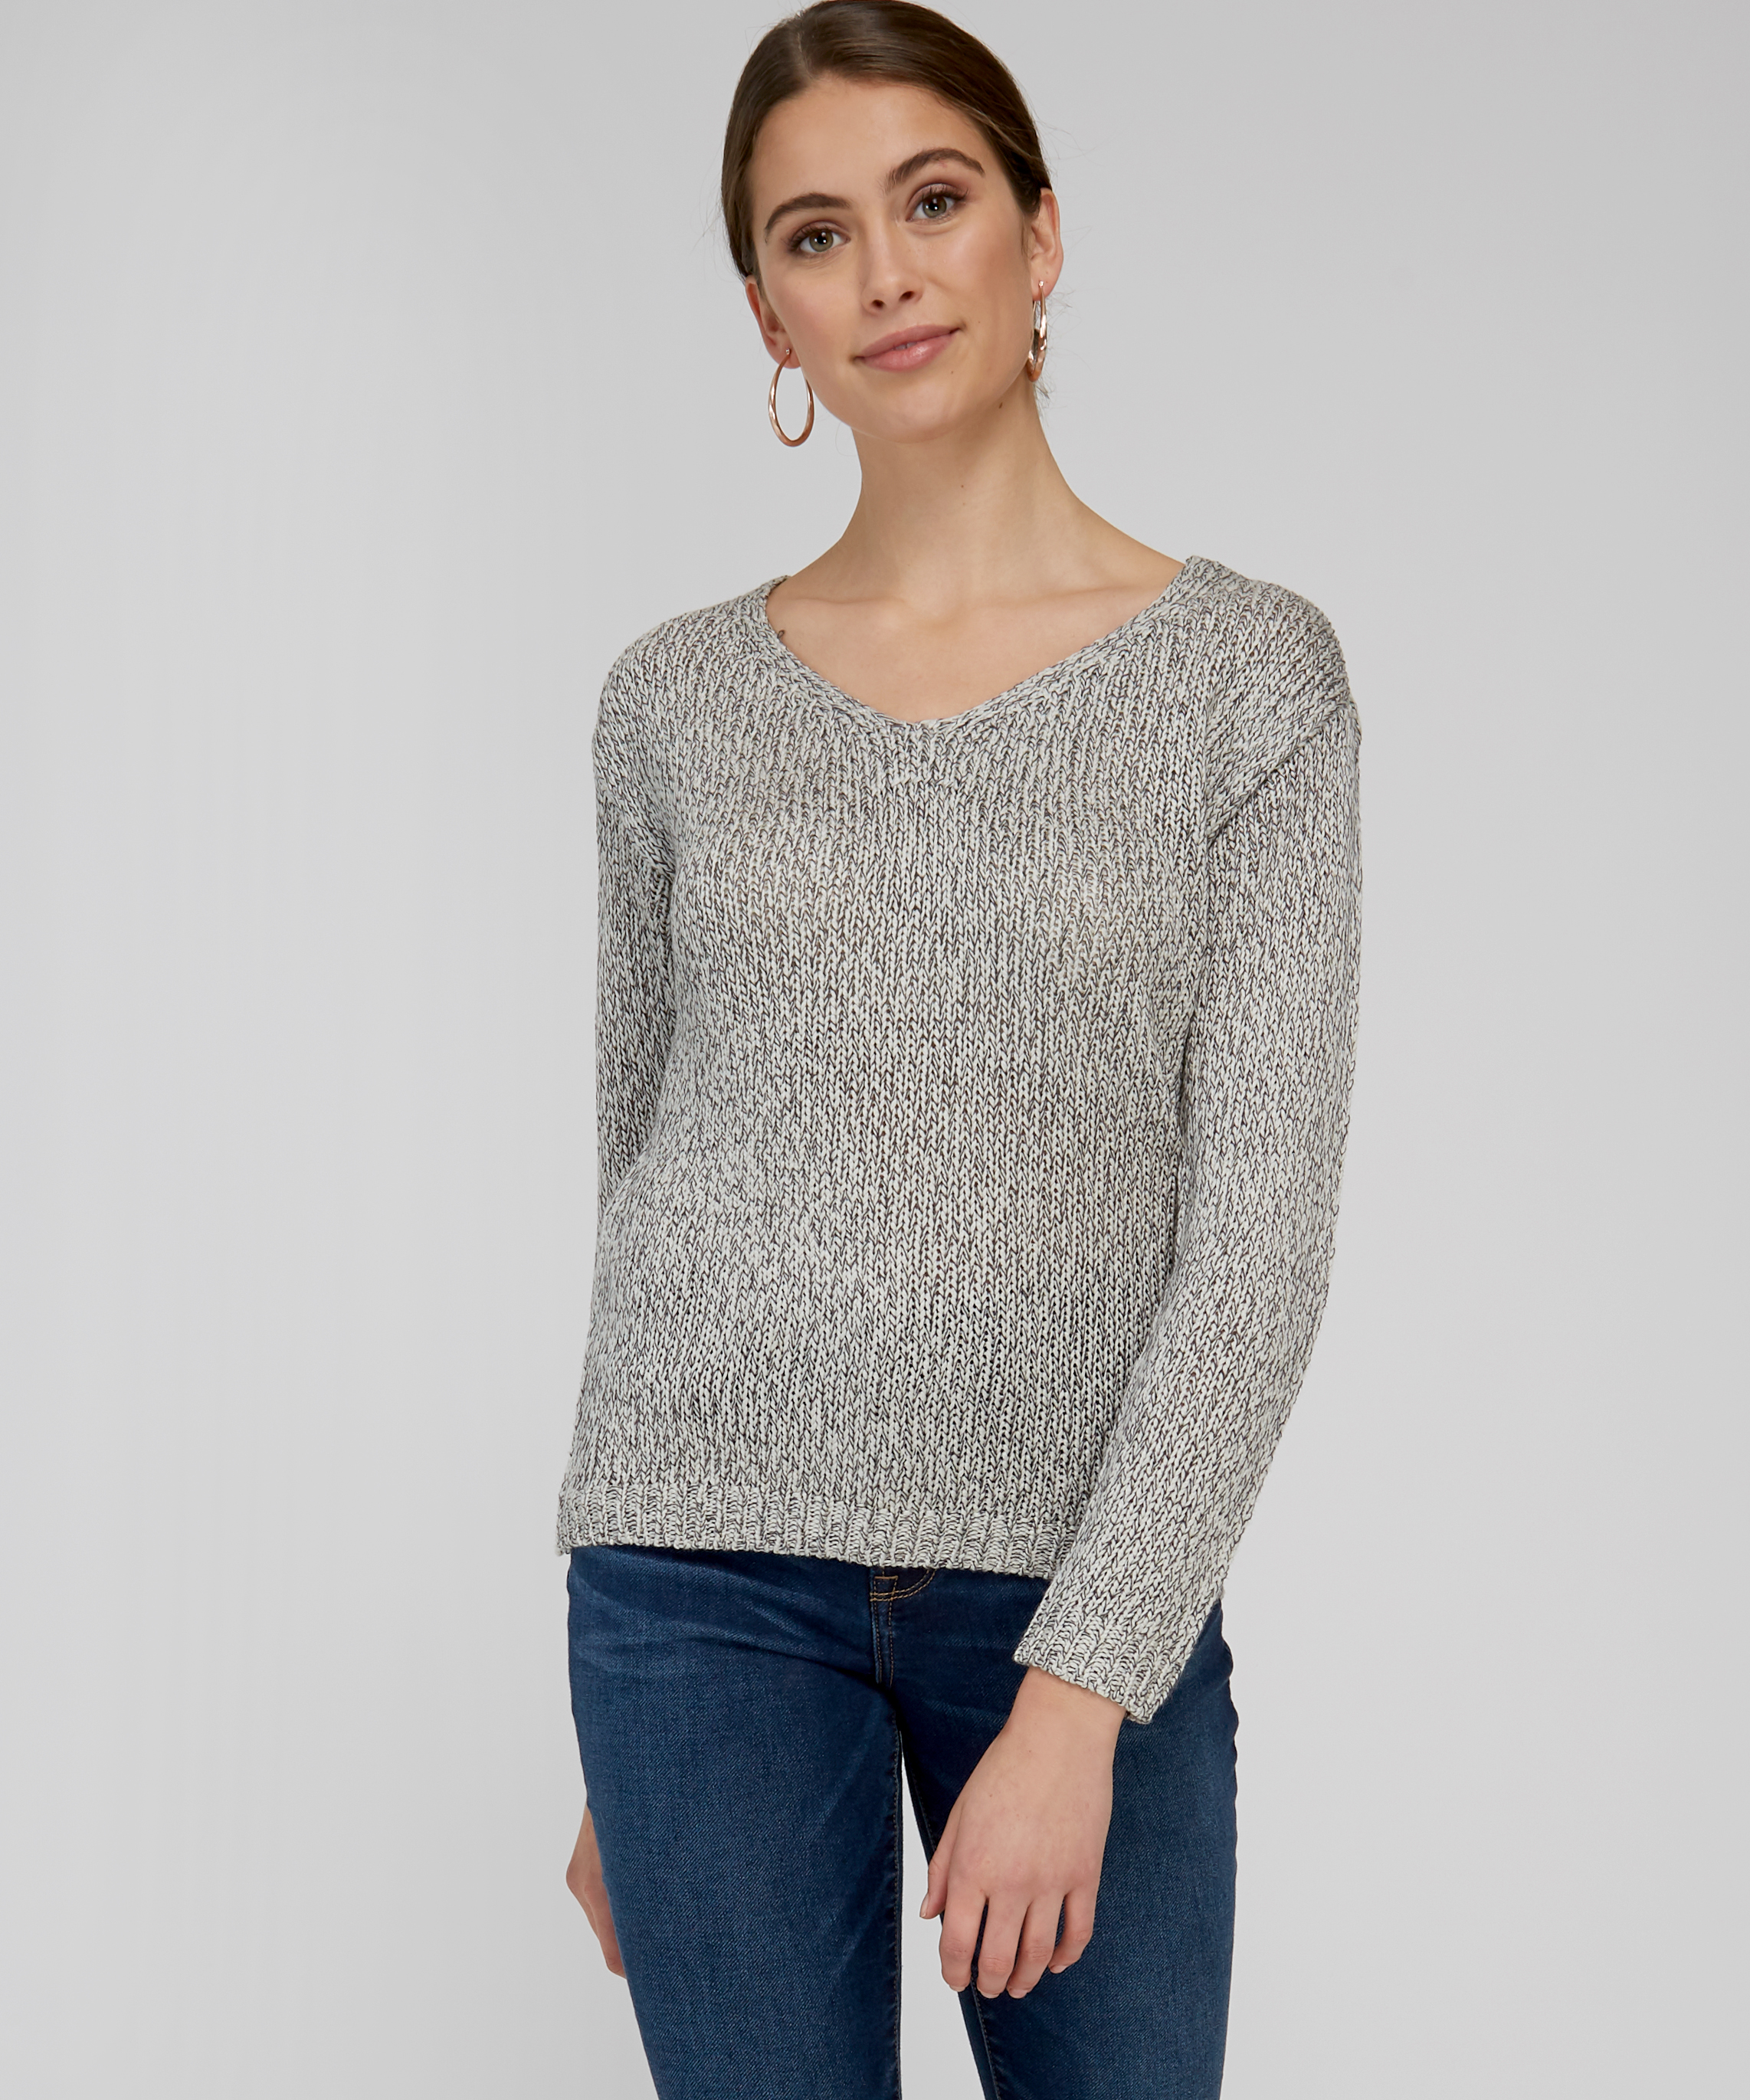 2804f8e222 sweater with lace up back - wb